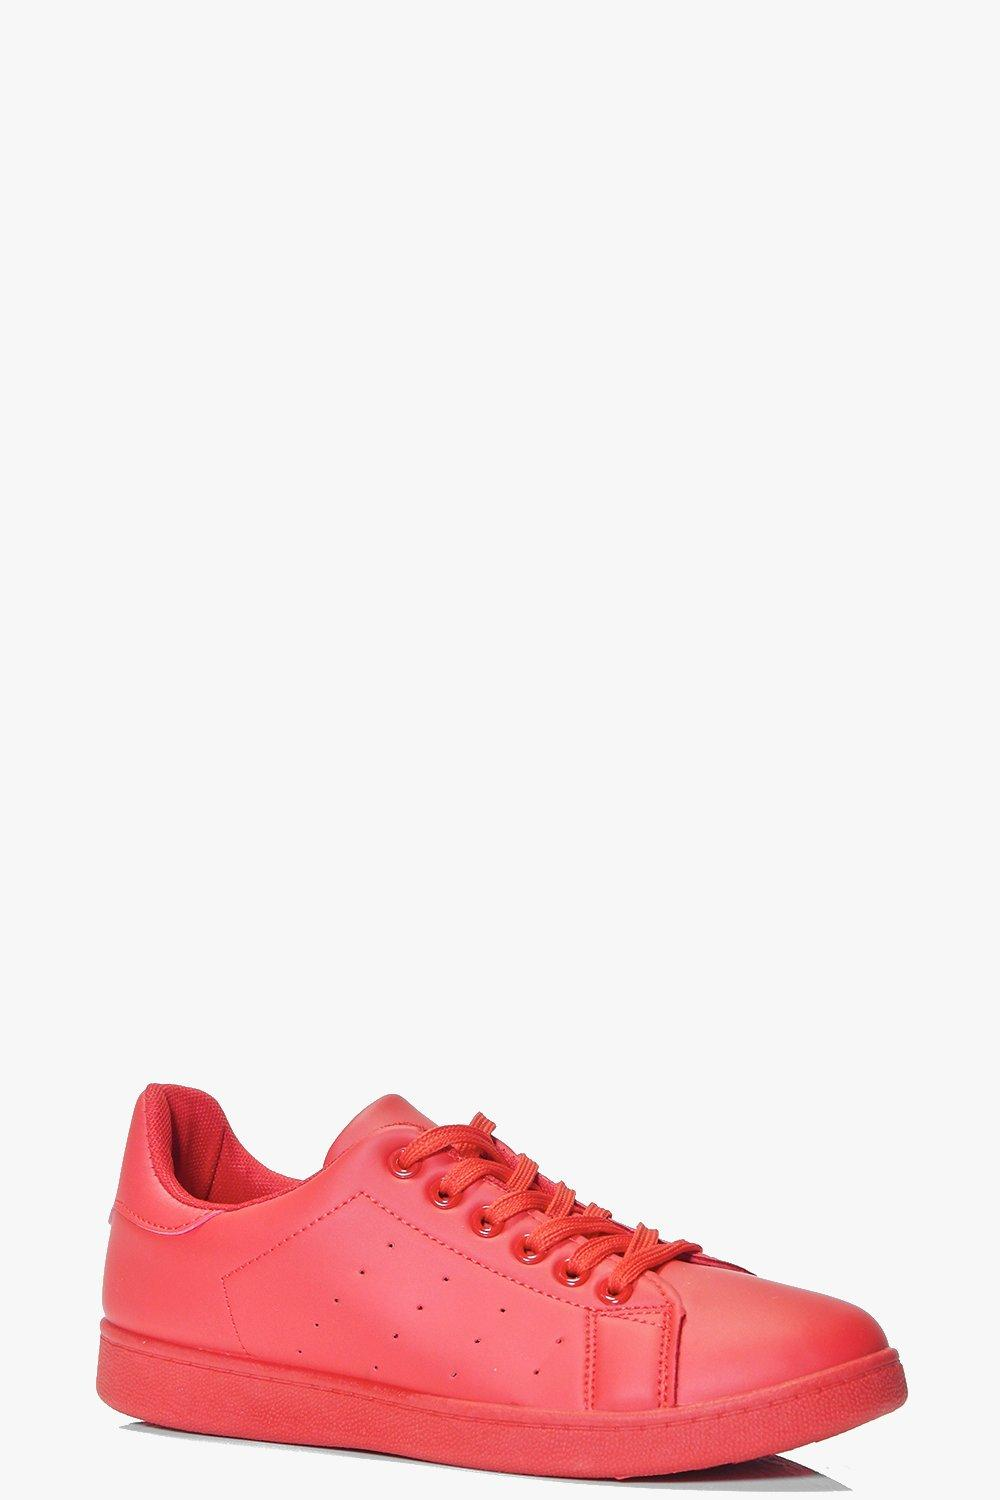 Angel Lace Up Colour Pop Trainer